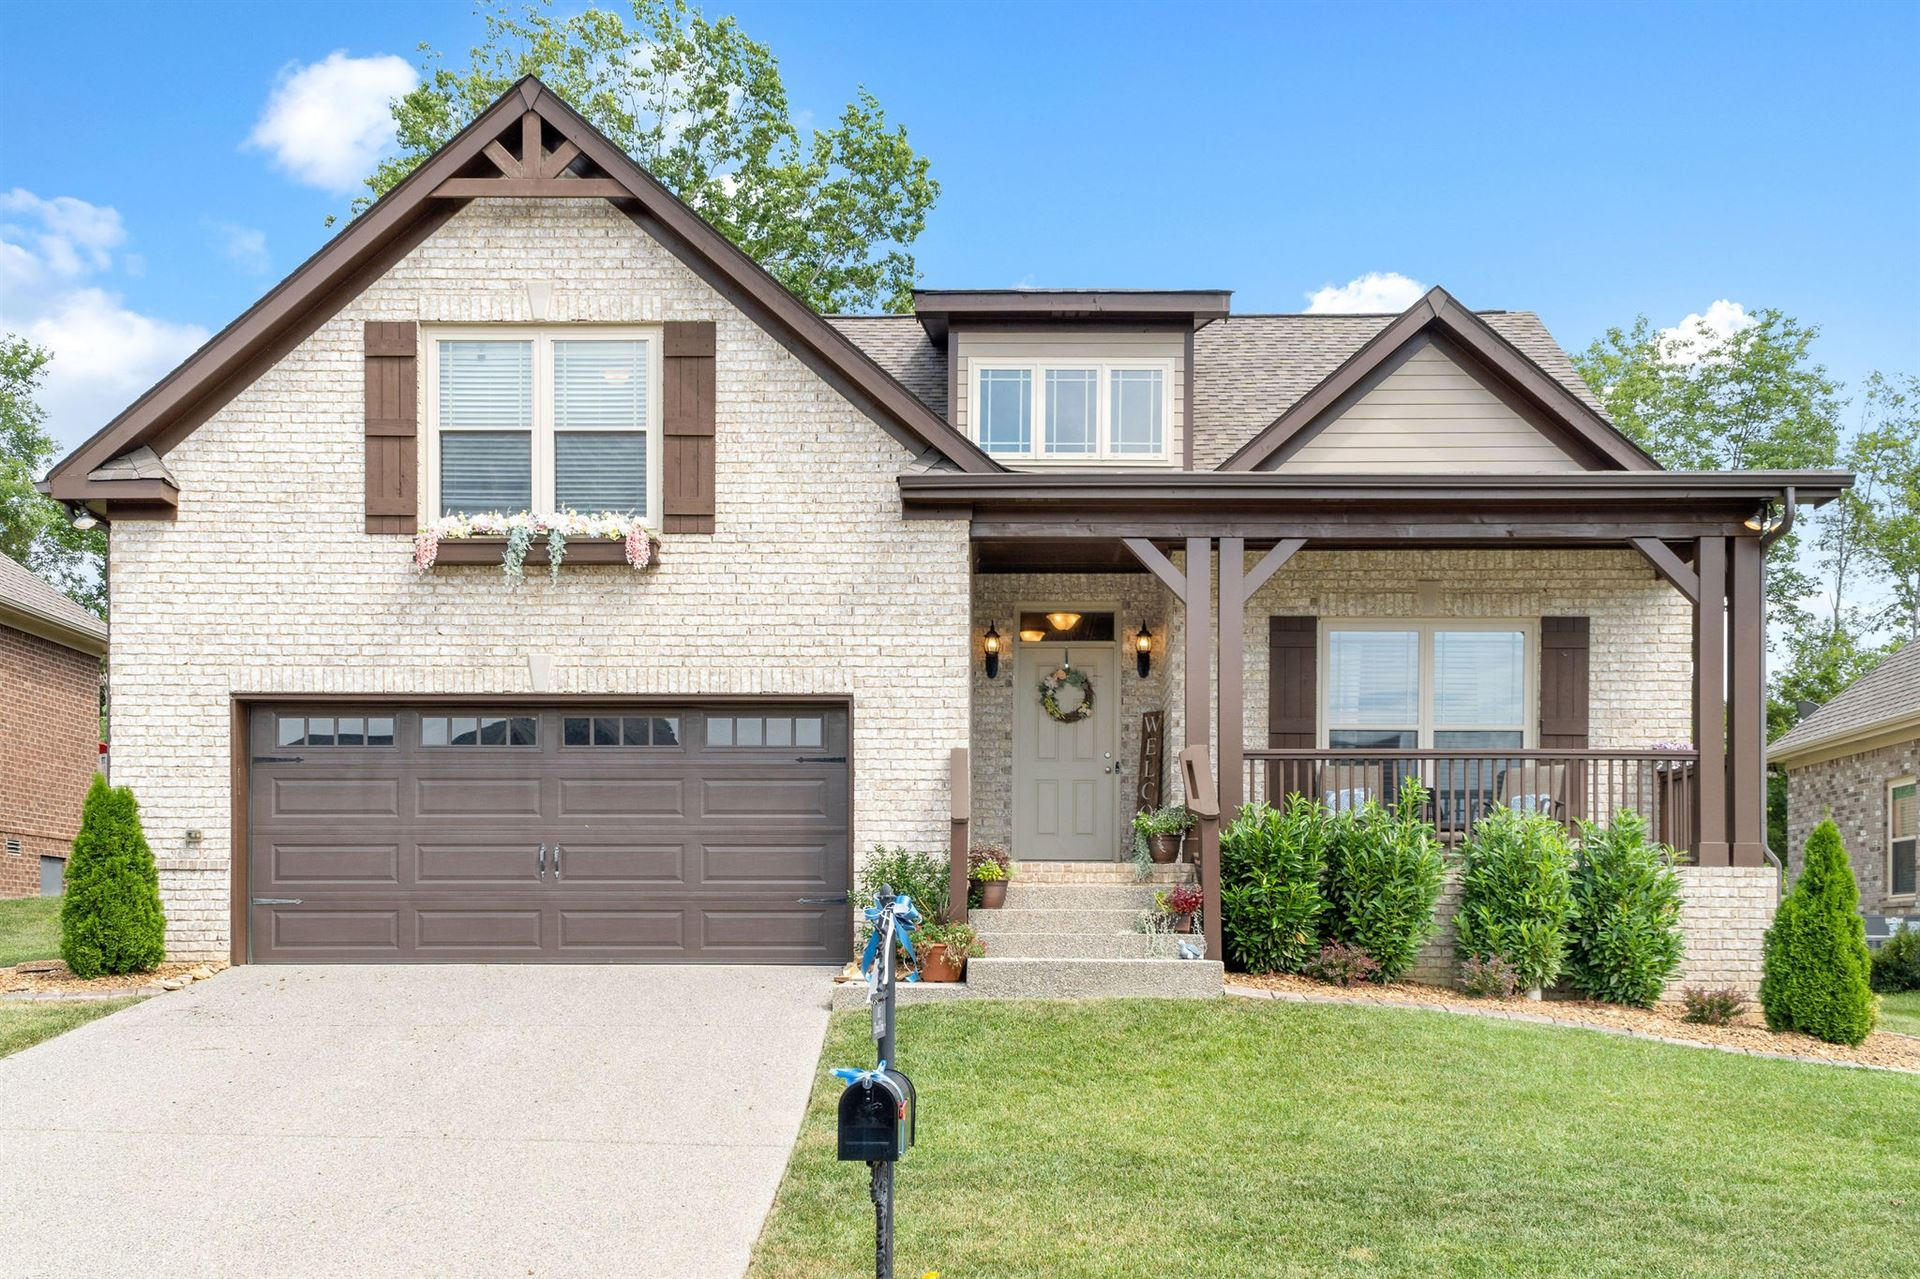 Photo of 1015 Claymill Dr, Spring Hill, TN 37174 (MLS # 2302497)